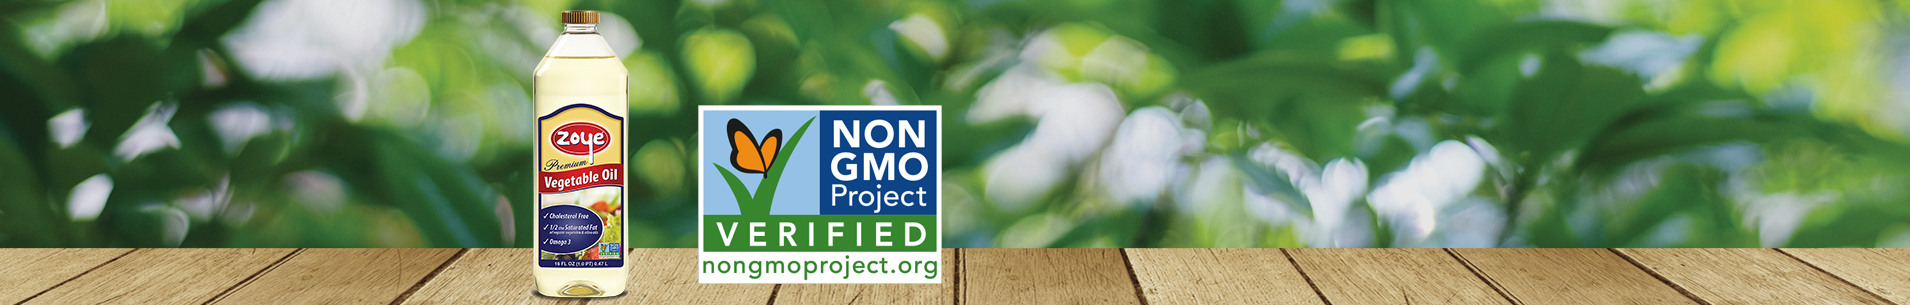 Zoye non-gmo project verified